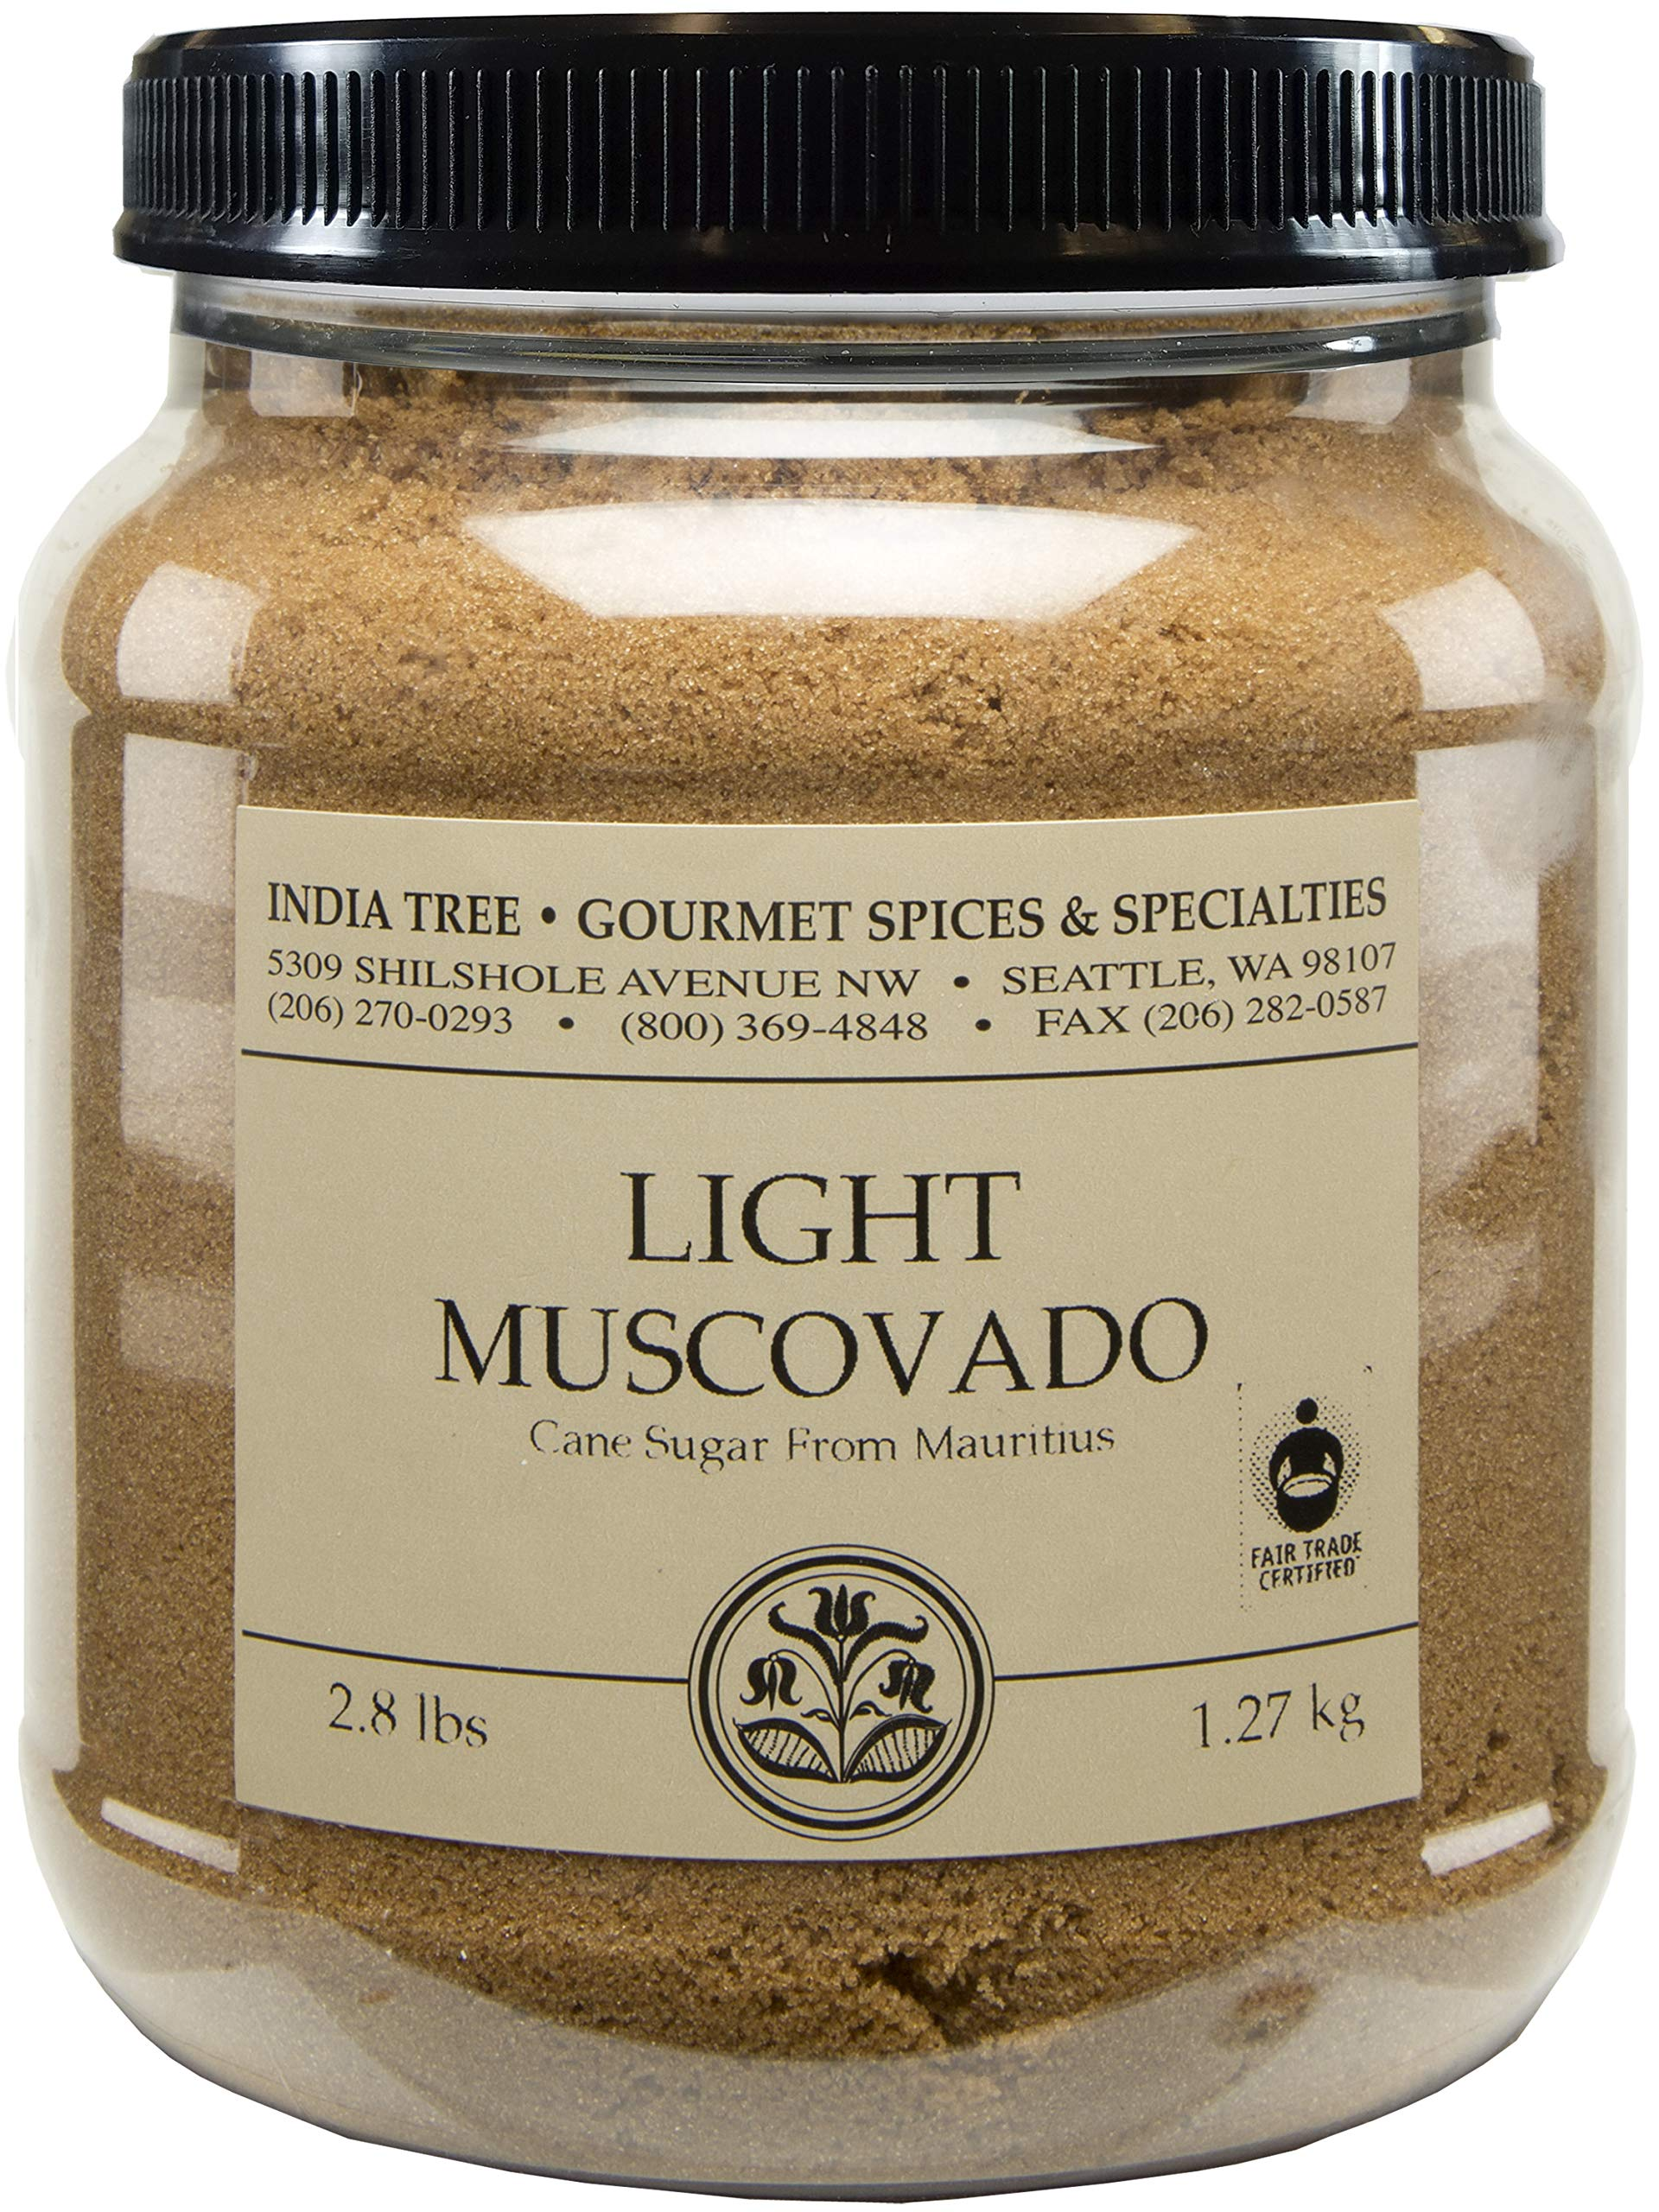 India Tree Light Muscovado Sugar, 2.8 lb (Pack of 2) by India Tree